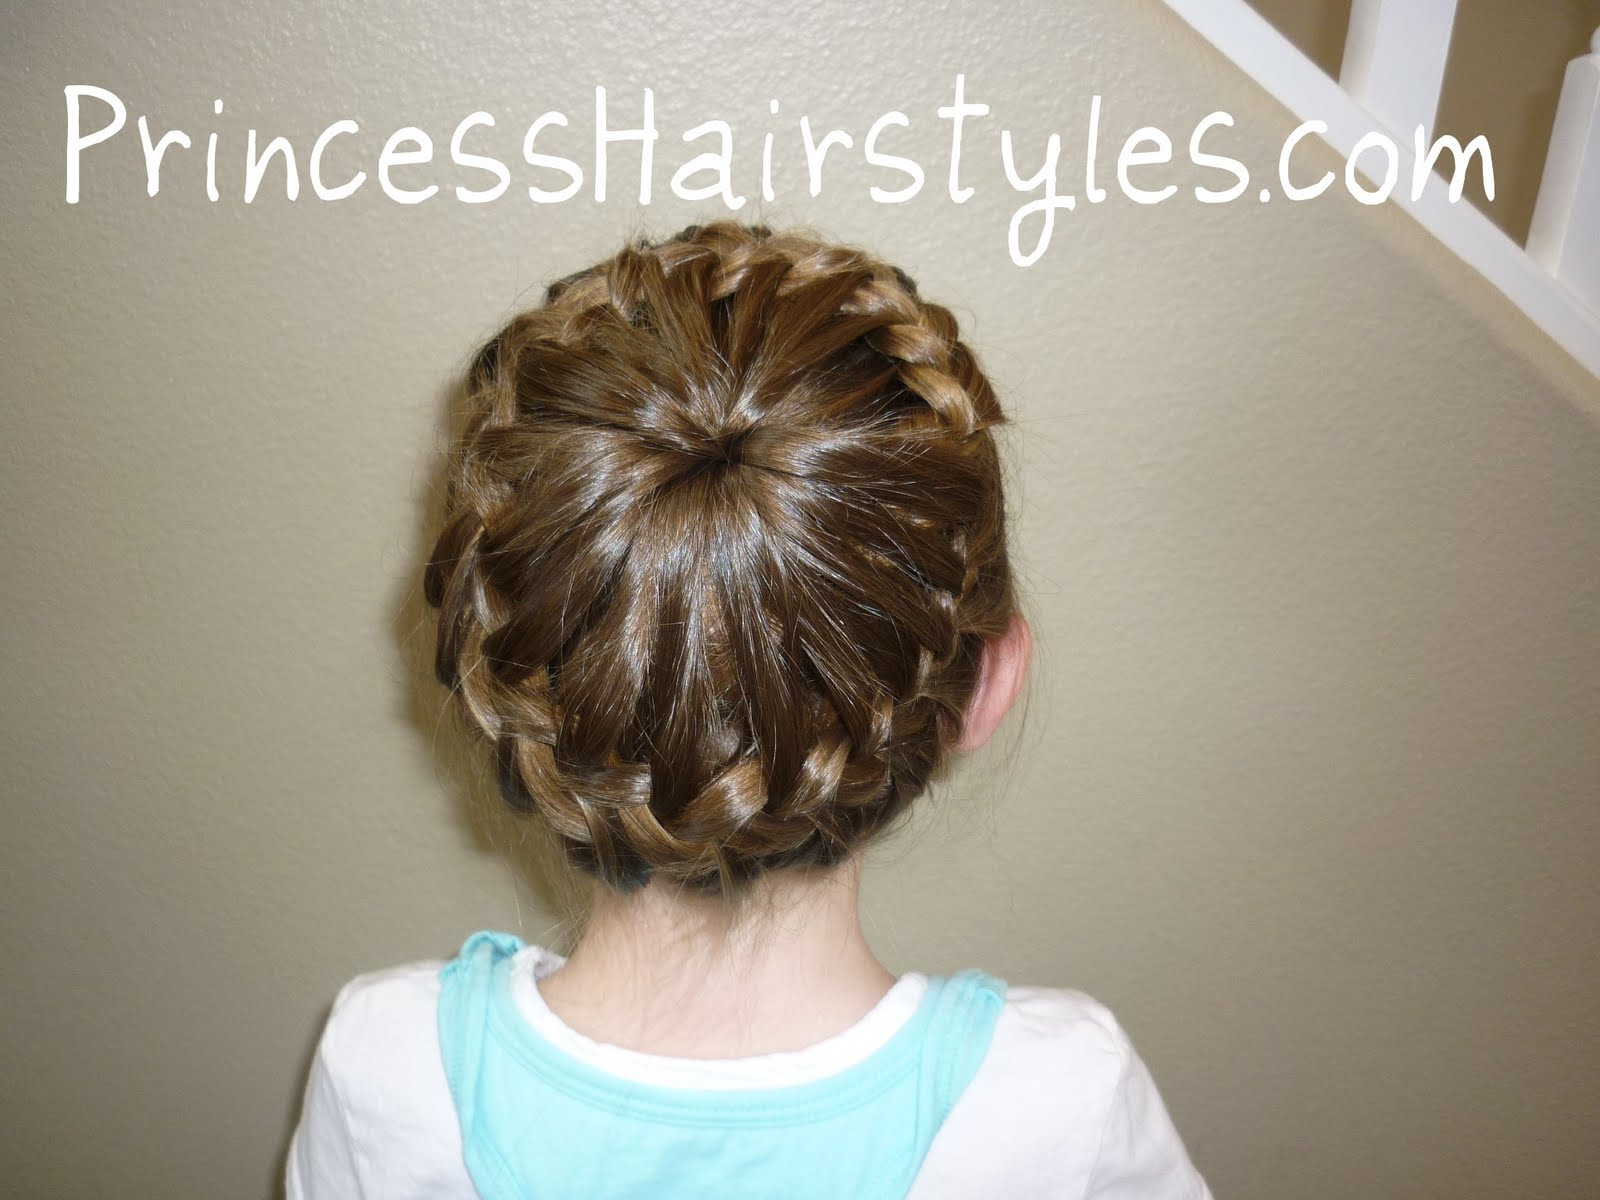 Or you could double the braids up and make french braid pigtail buns